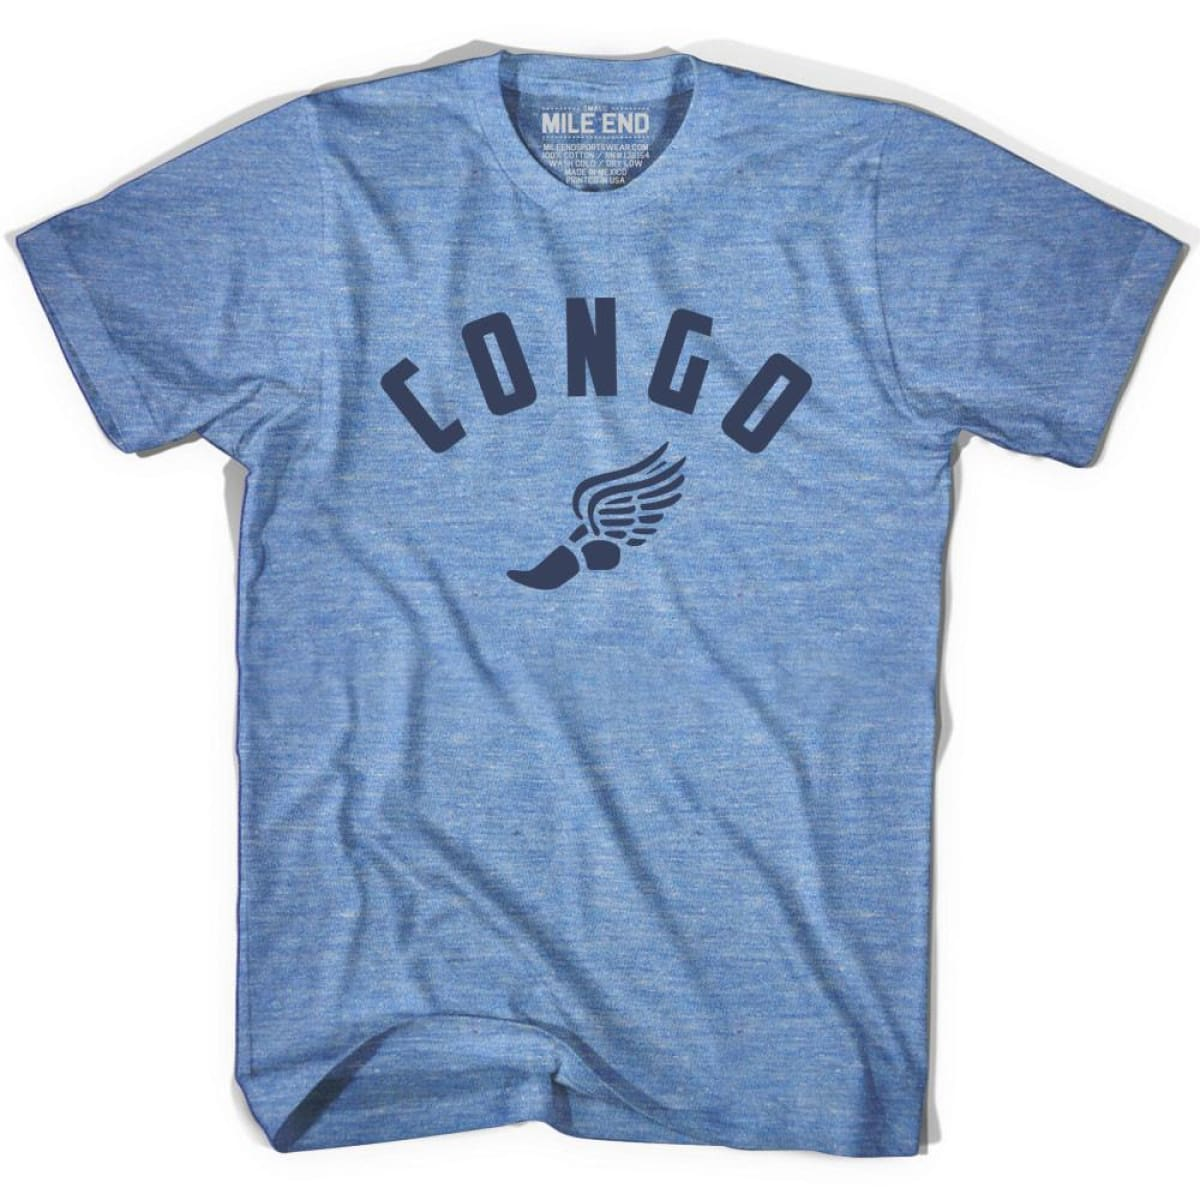 Congo Track T-shirt - Athletic Blue / Adult X-Small - Mile End Track